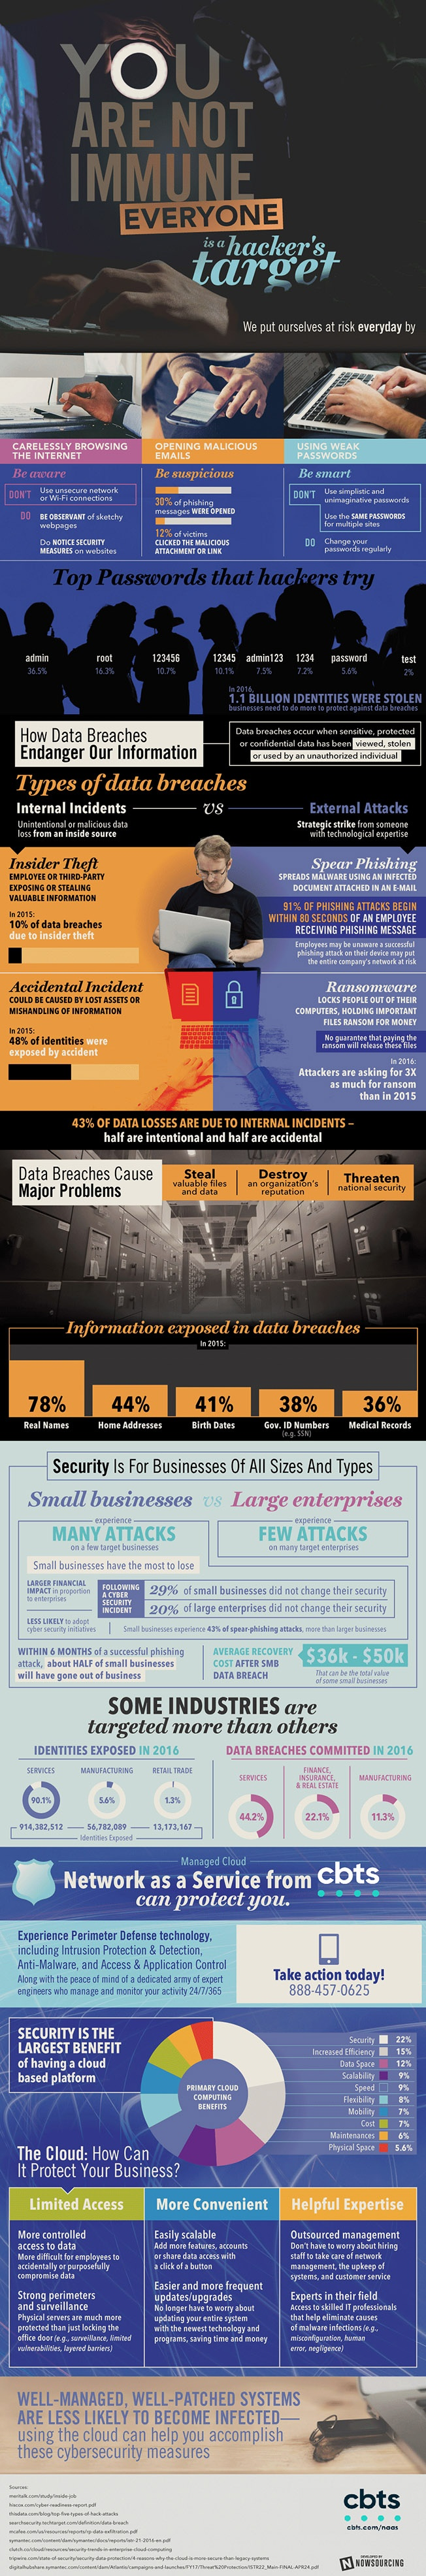 NaaS_Hacker Target_Security Infographic-Cover_041018